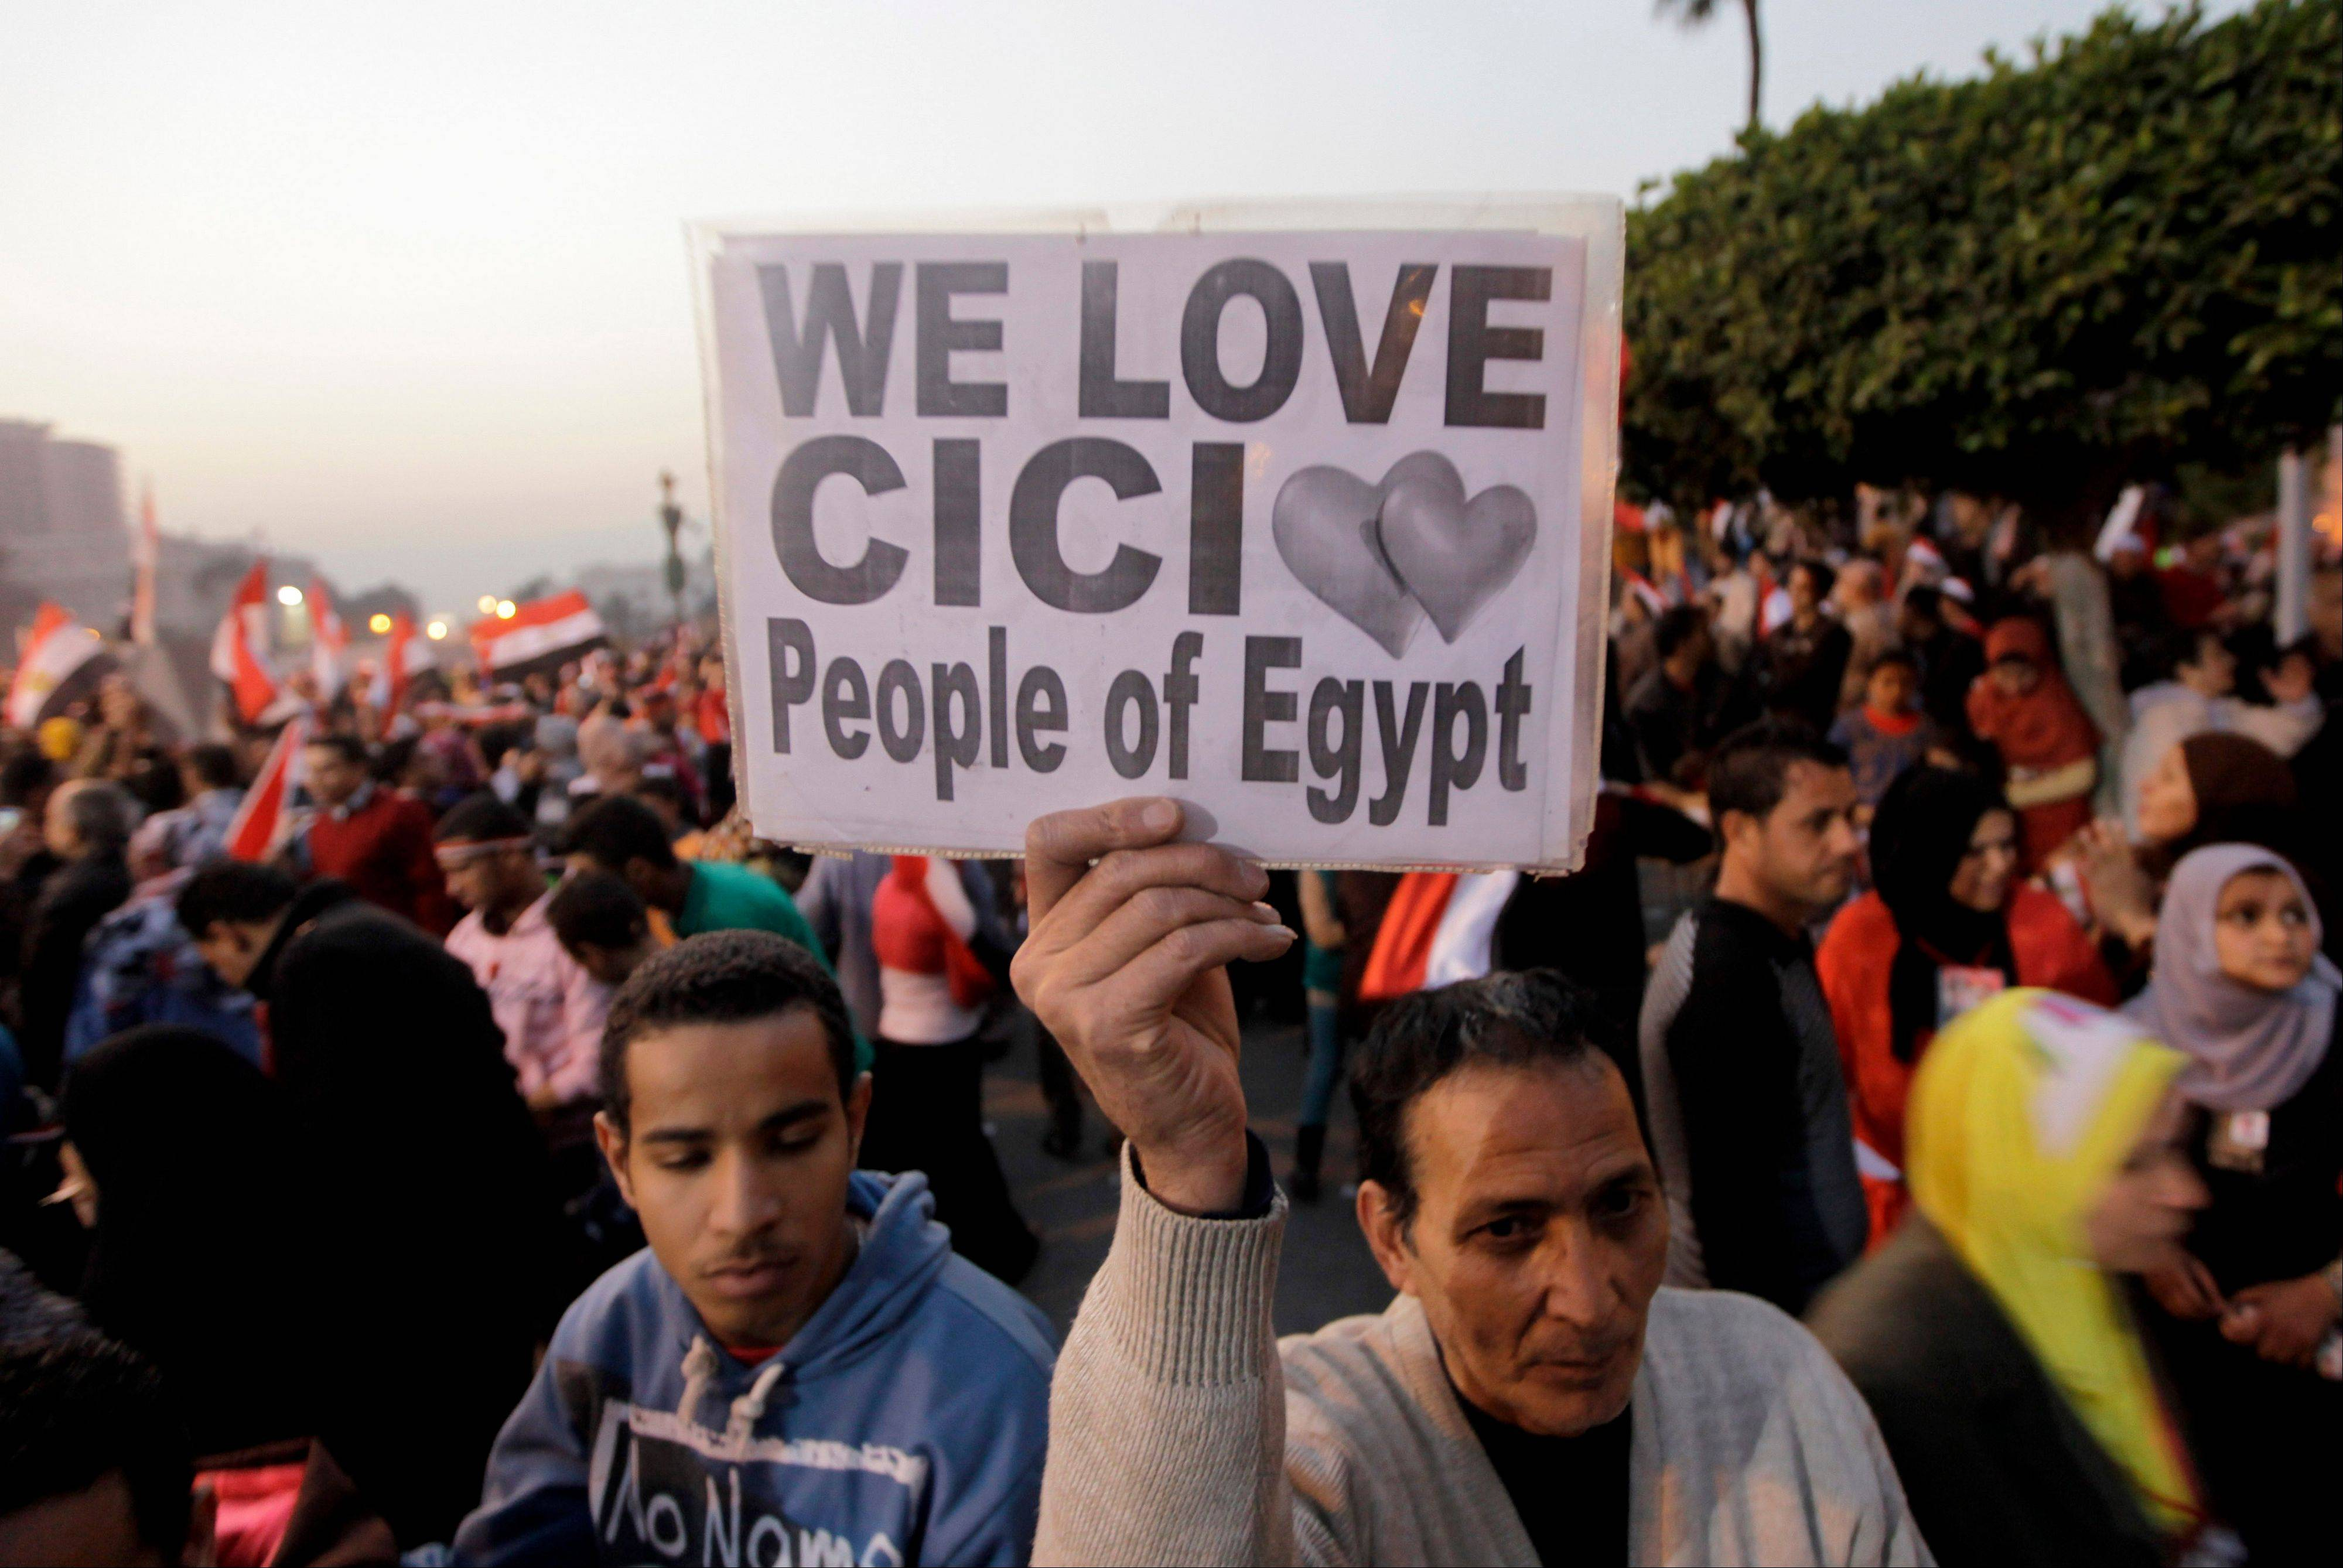 An Egyptian raises a placard Saturday supporting Egypt's Defense Minister, Gen. Abdel-Fattah el-Sissi in Tahrir Square, the epicenter of the 2011 uprising, in Cairo, Egypt.